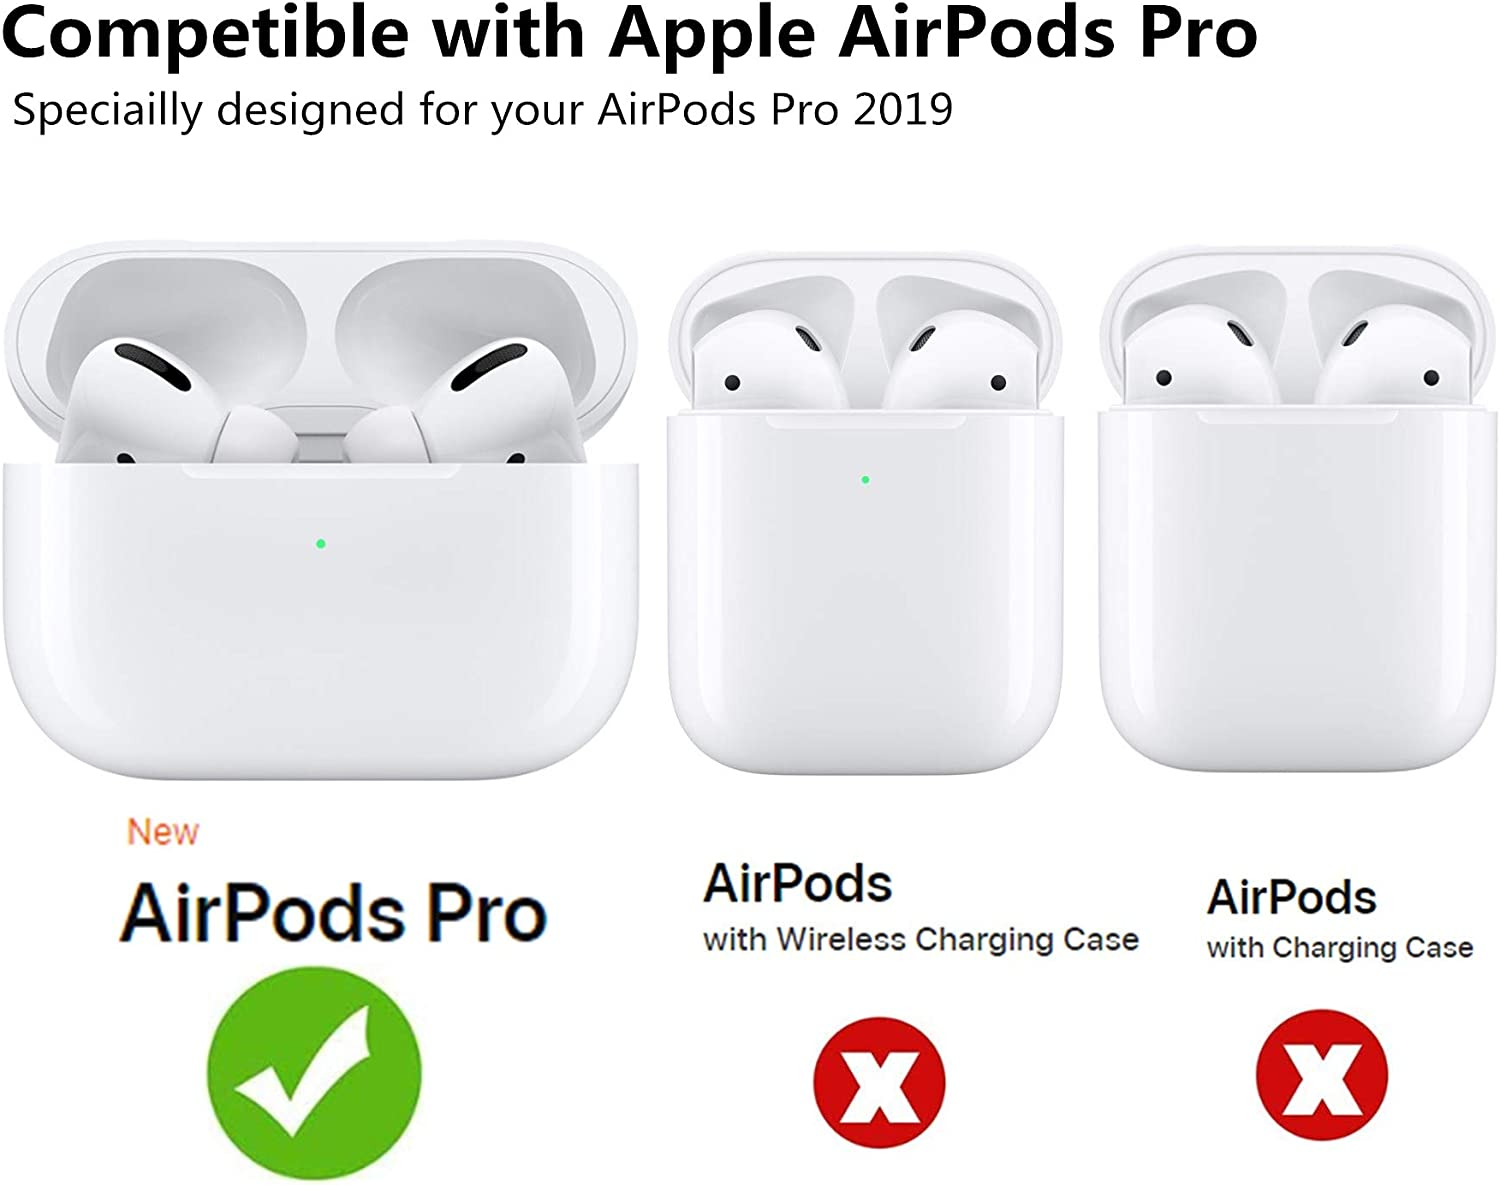 Airpods Pro Accessories Cute Soft Silicone Protective Shockproof Cases with Portable Keychain//Strap//Watch Band Holder//Hard Carrying Case for Apple Airpods 3 Black FILOTO Airpods Pro Case Cover